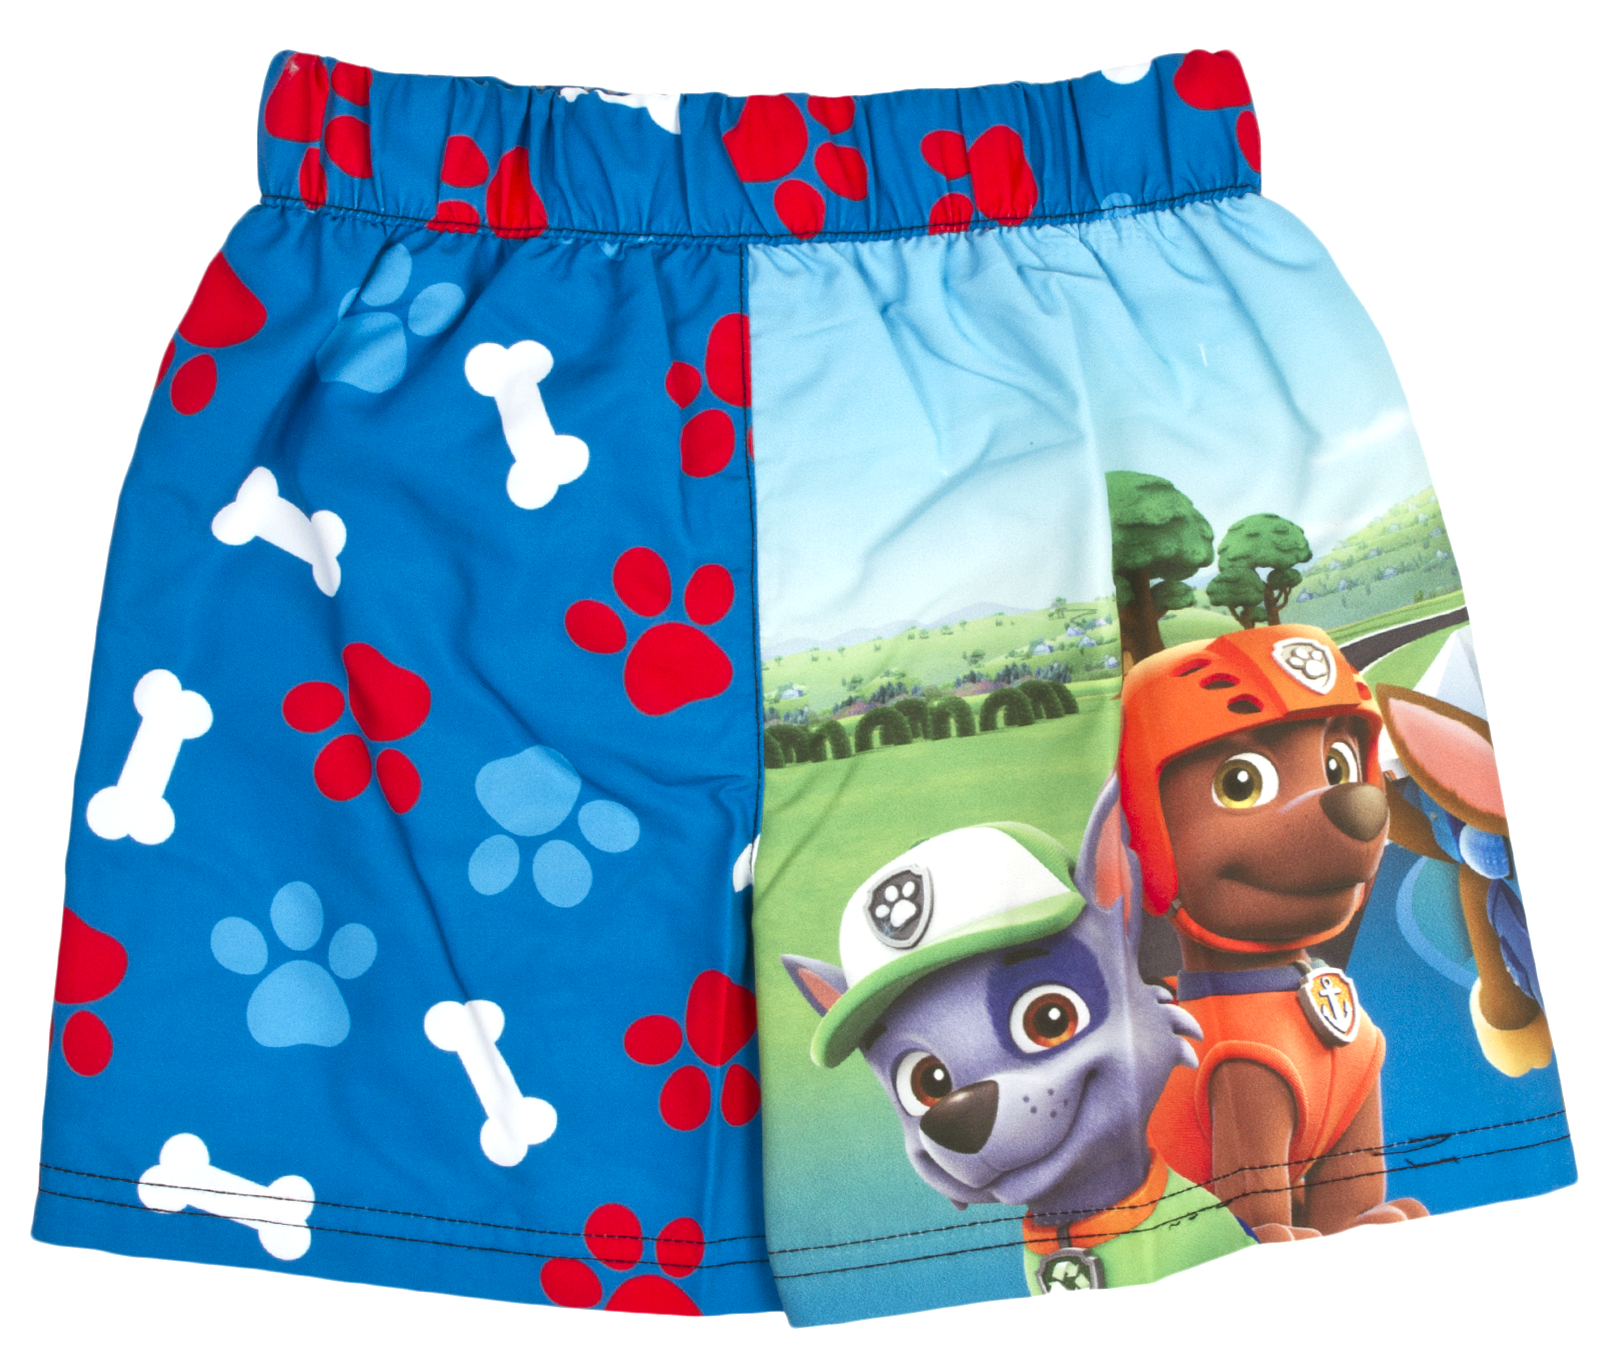 d99f339c3b Sports & Outdoors Paw Patrol Boys Chase and Marshall Swim Shorts Swimwear,  Surfwear & Wetsuits